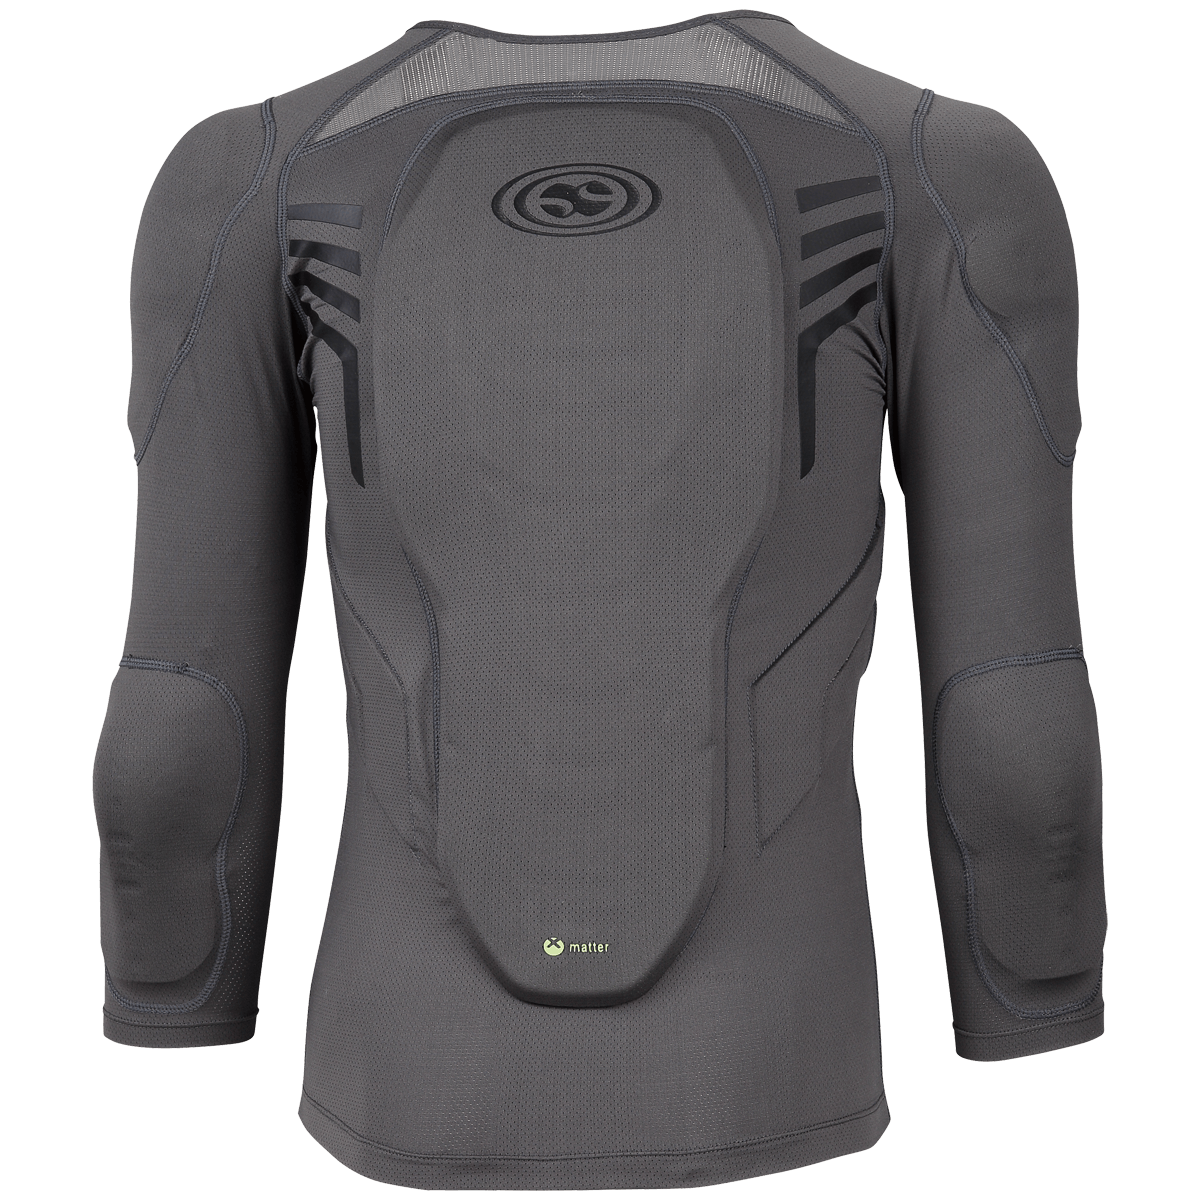 TRIGGER BODY PROTECTOR